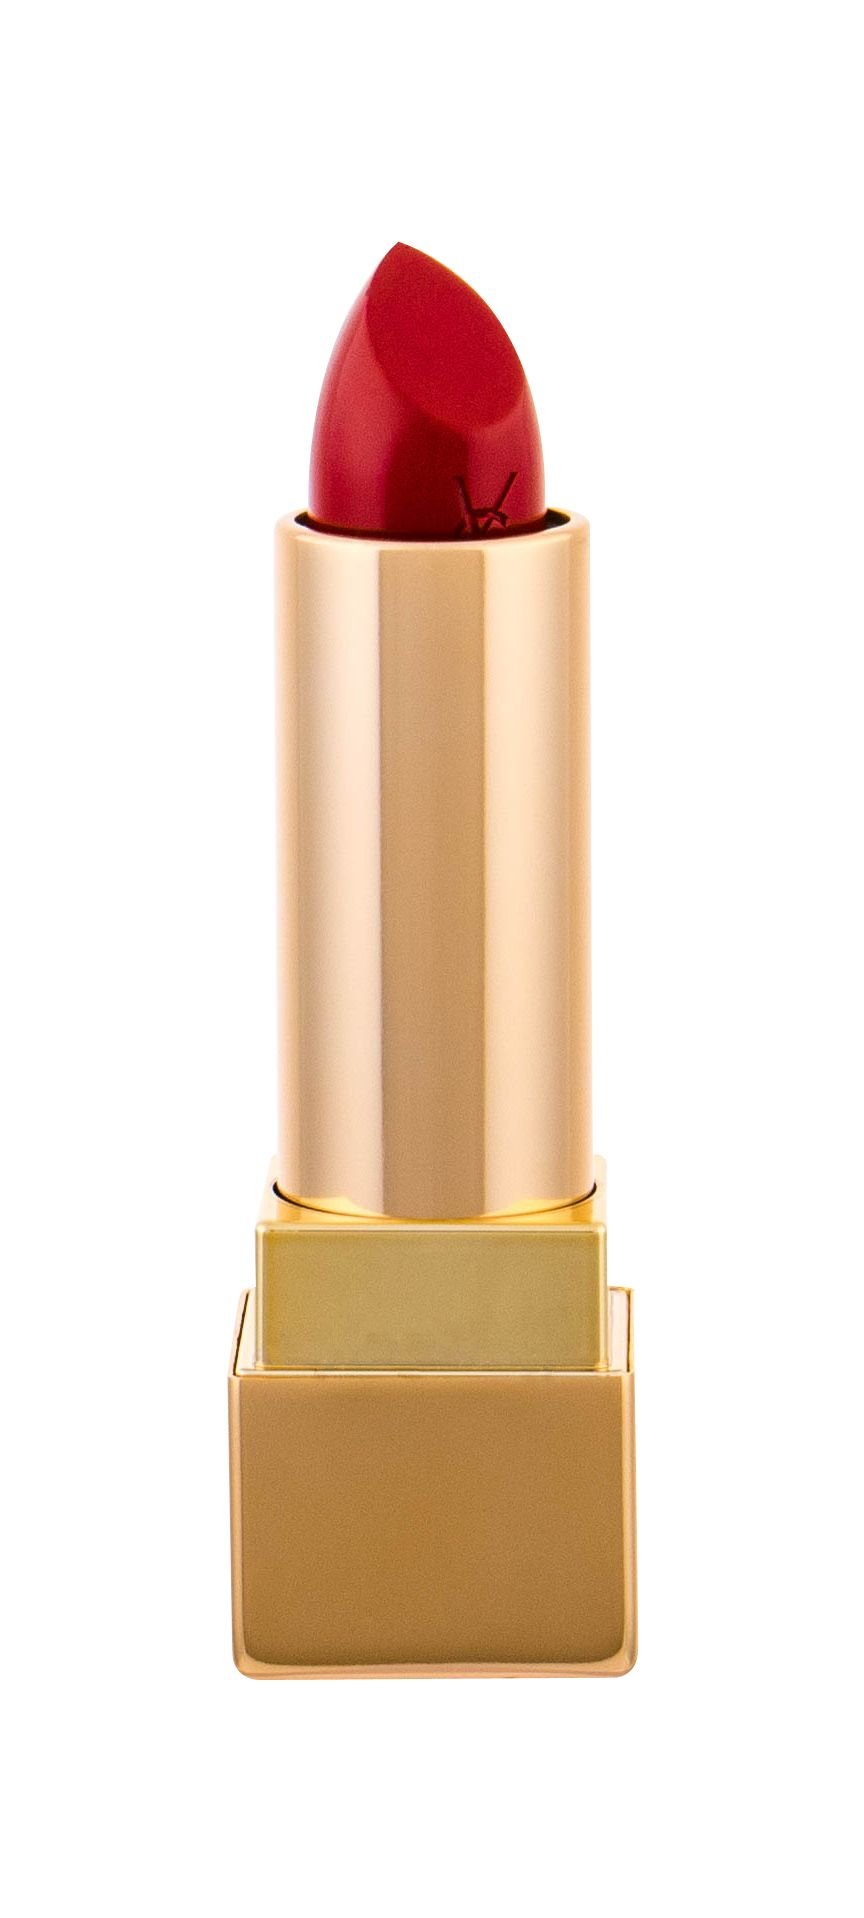 Yves Saint Laurent Rouge Pur Couture Lipstick 3,8ml 14 Rouge Feu